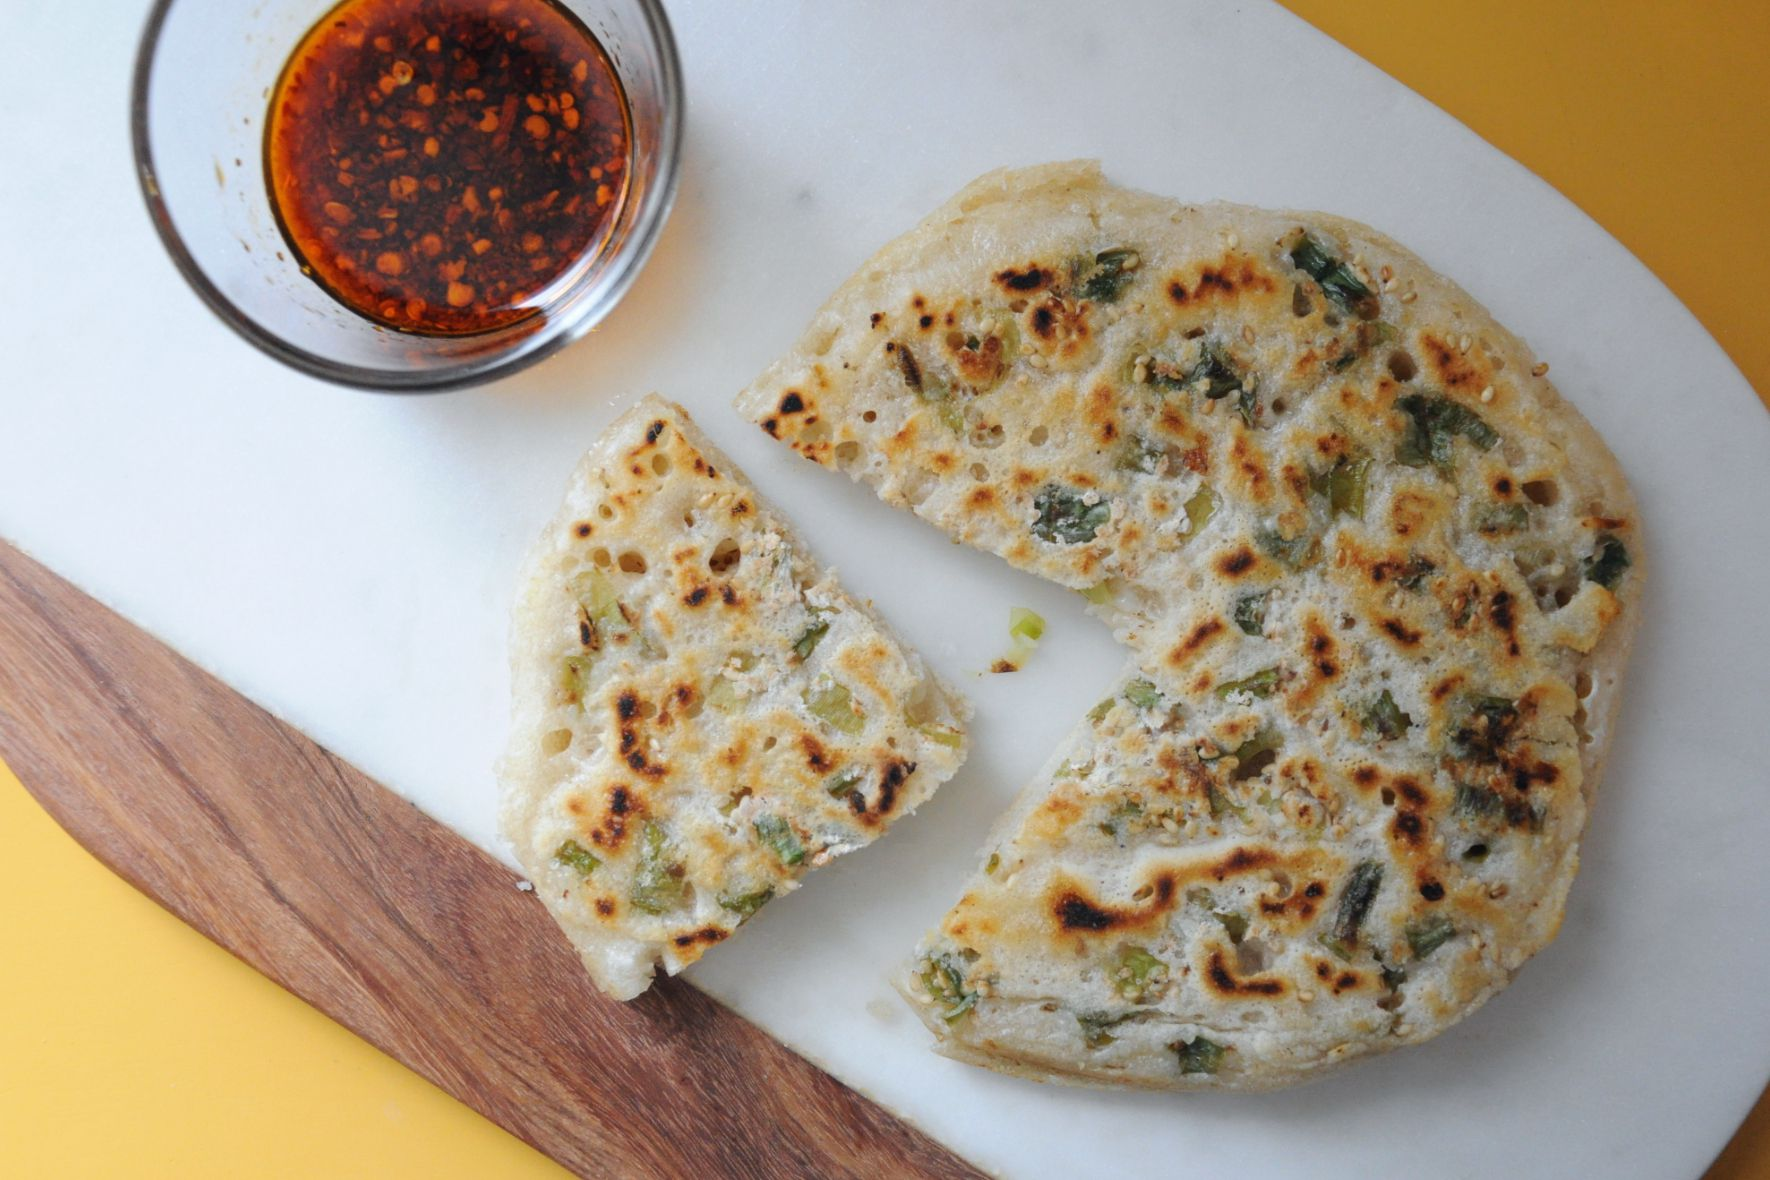 Tired of Wasting Sourdough Starter? Make This Super Easy Scallion Pancake